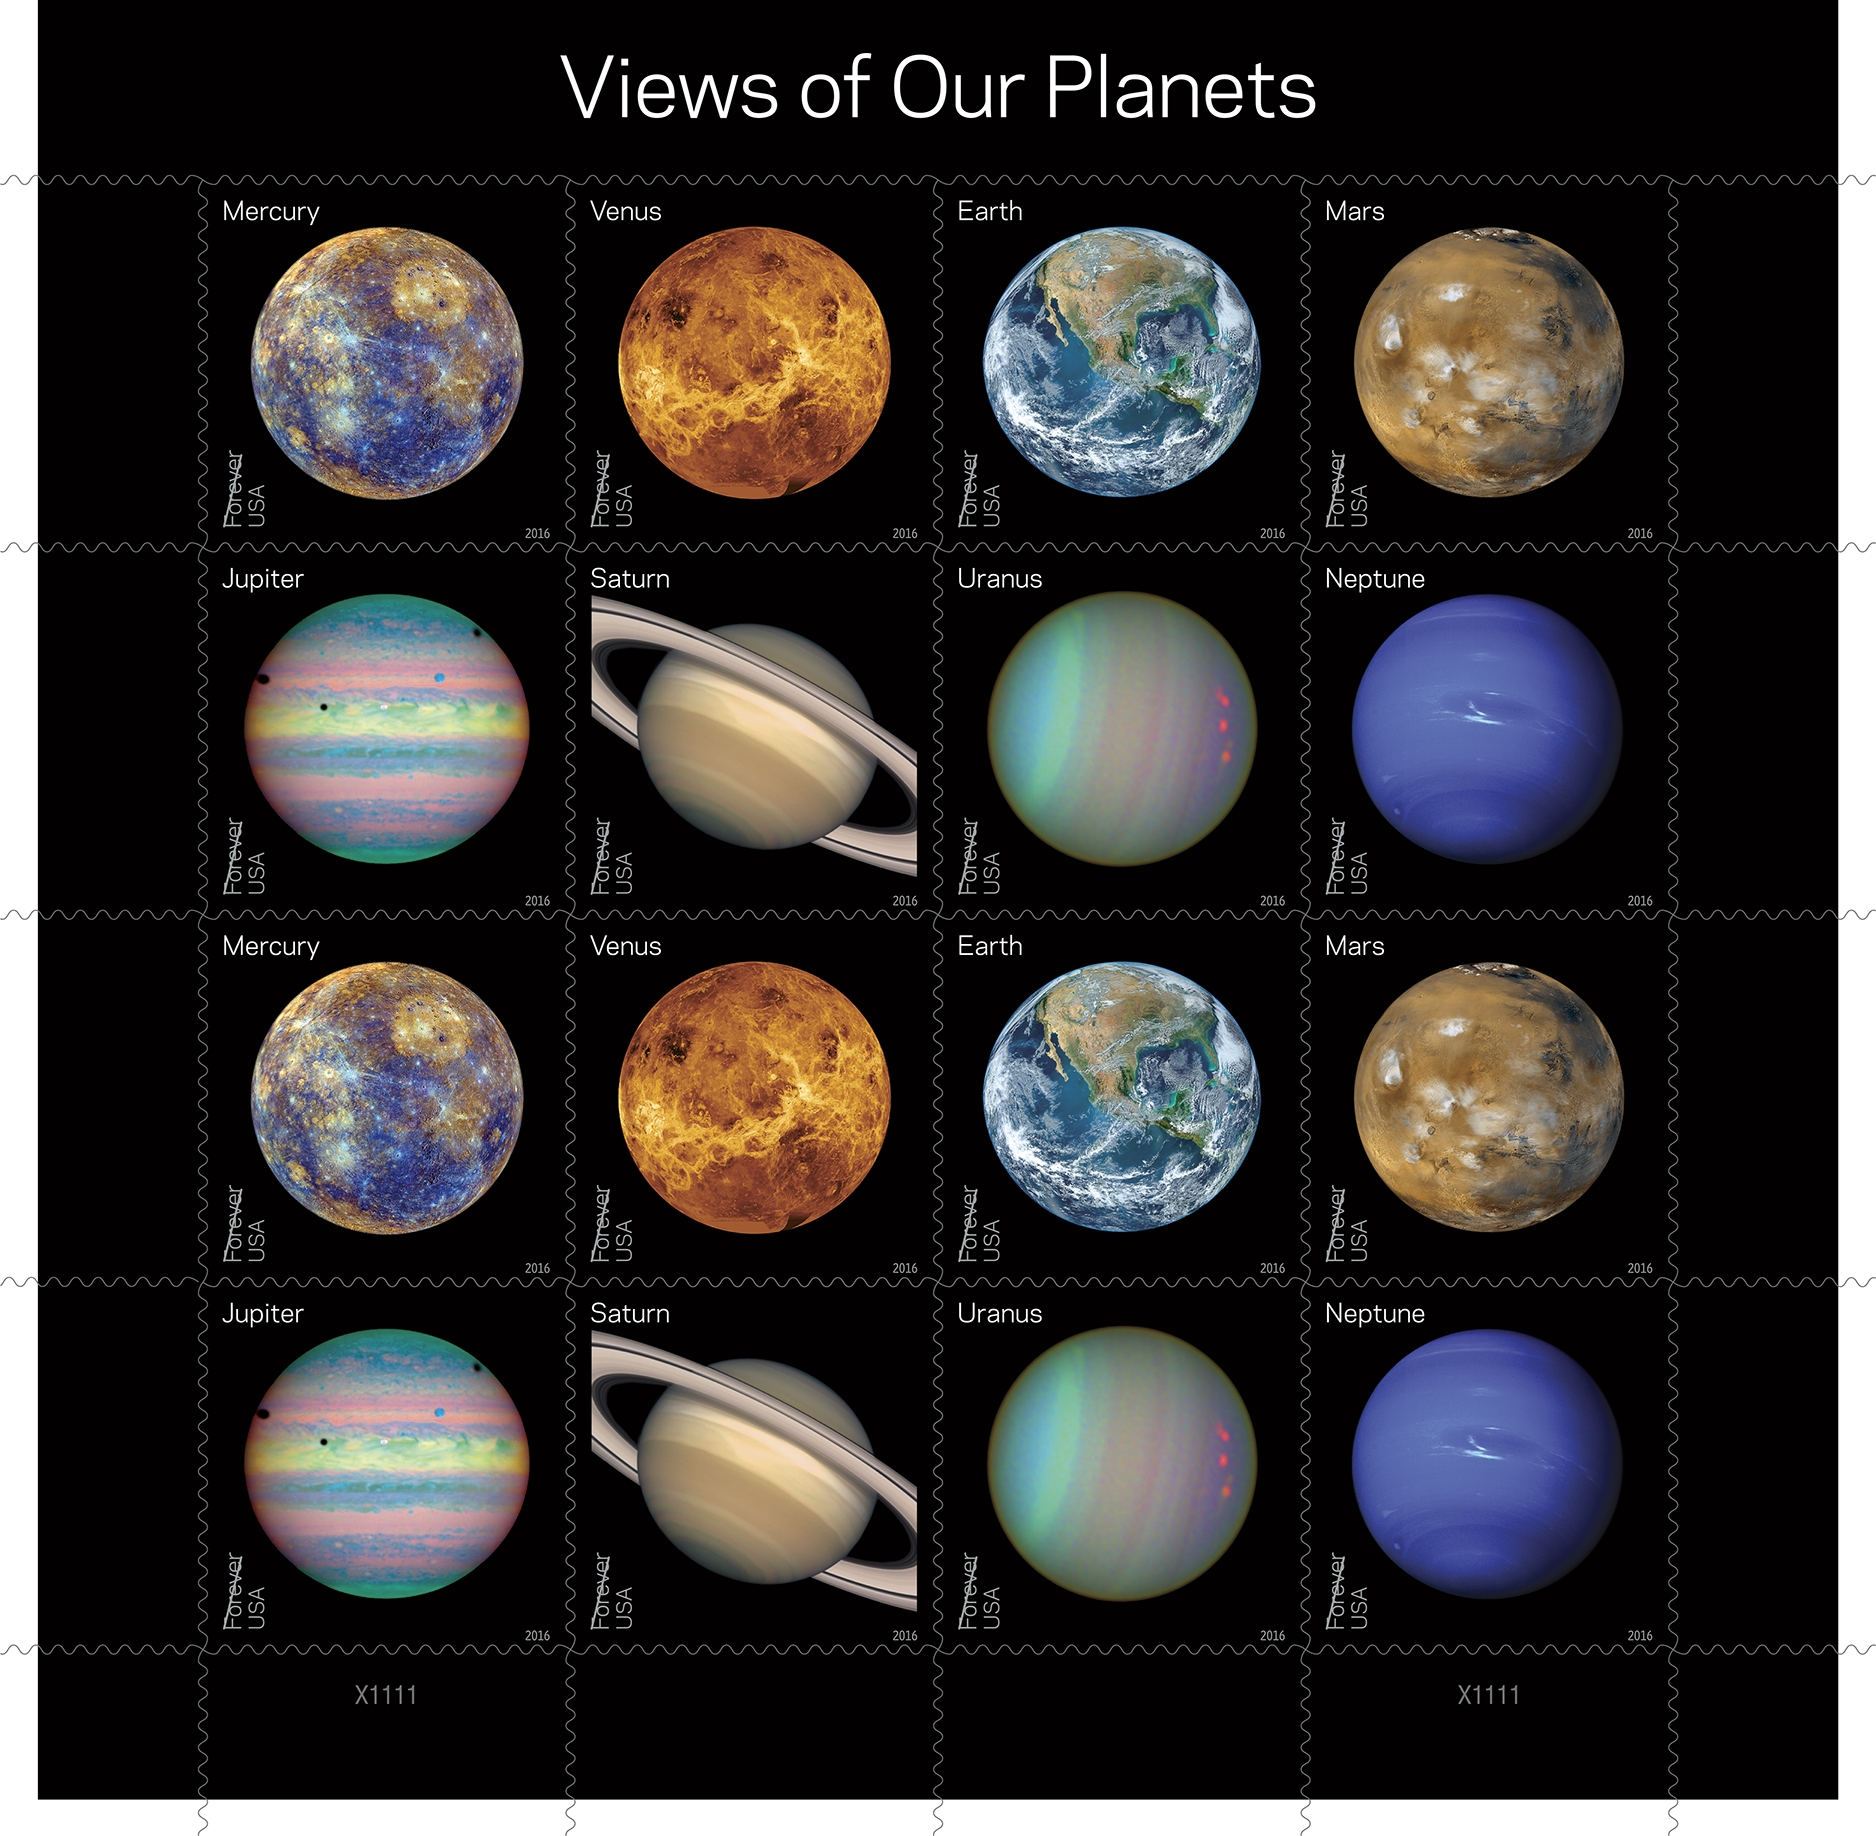 Buy Usps Pluto Space And Star Trek Stamps Business Insider